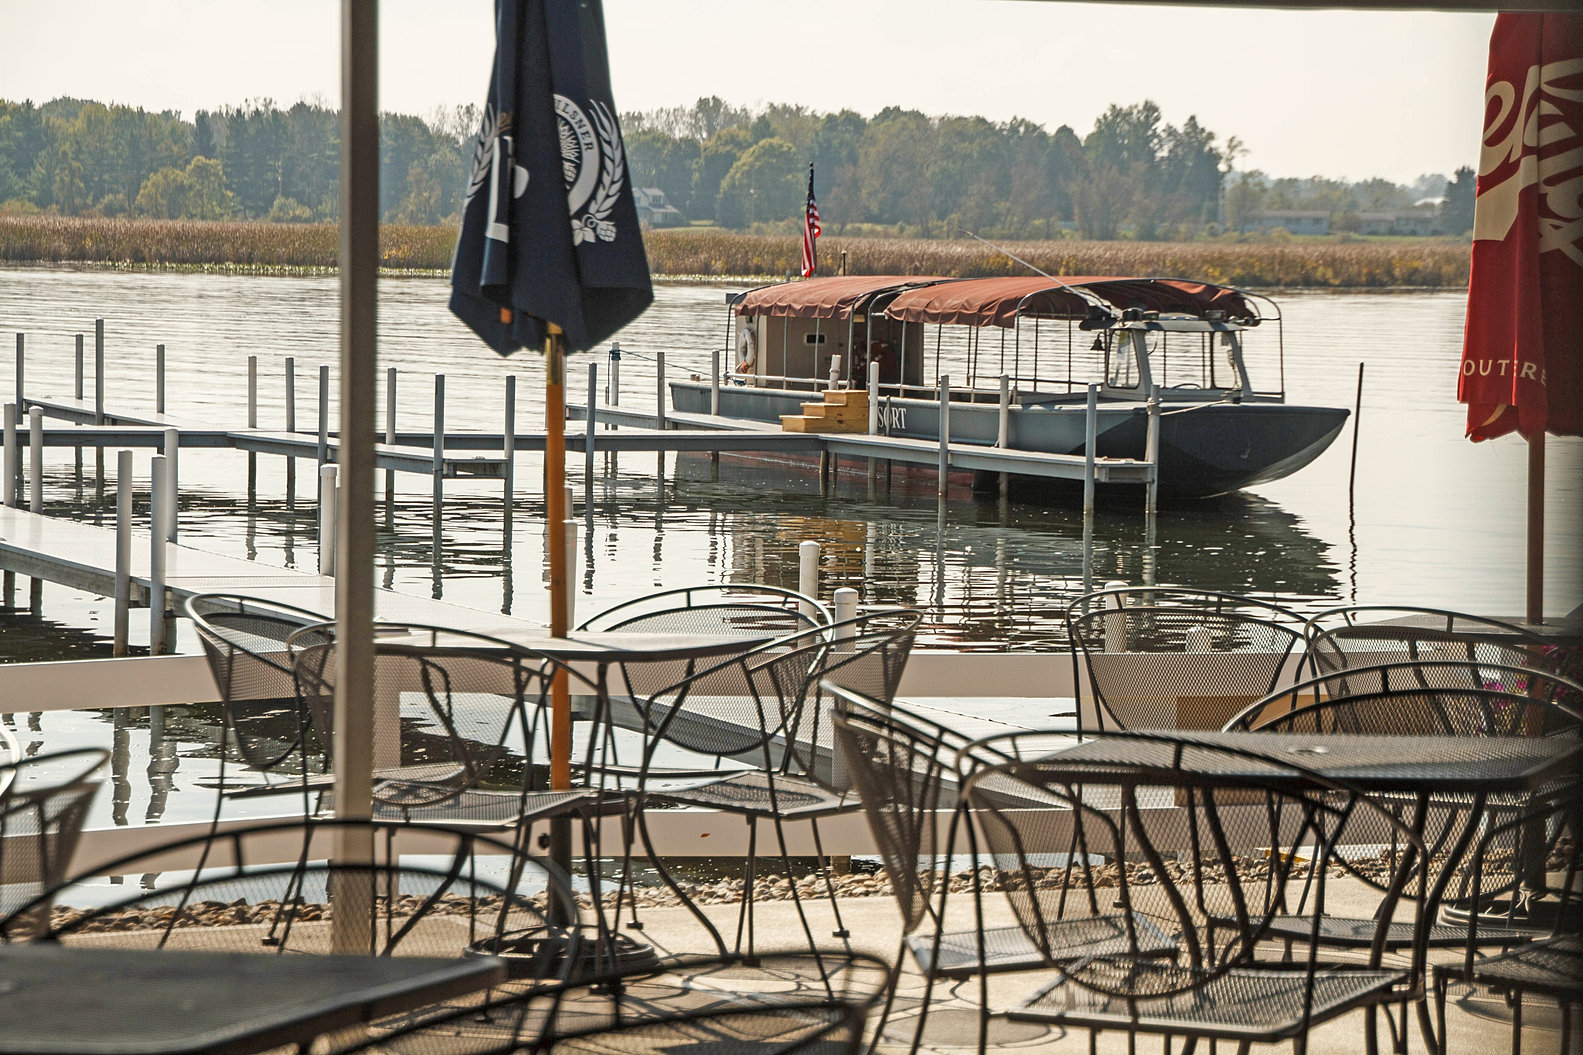 Back Porch Dining and Tourboat.jpg